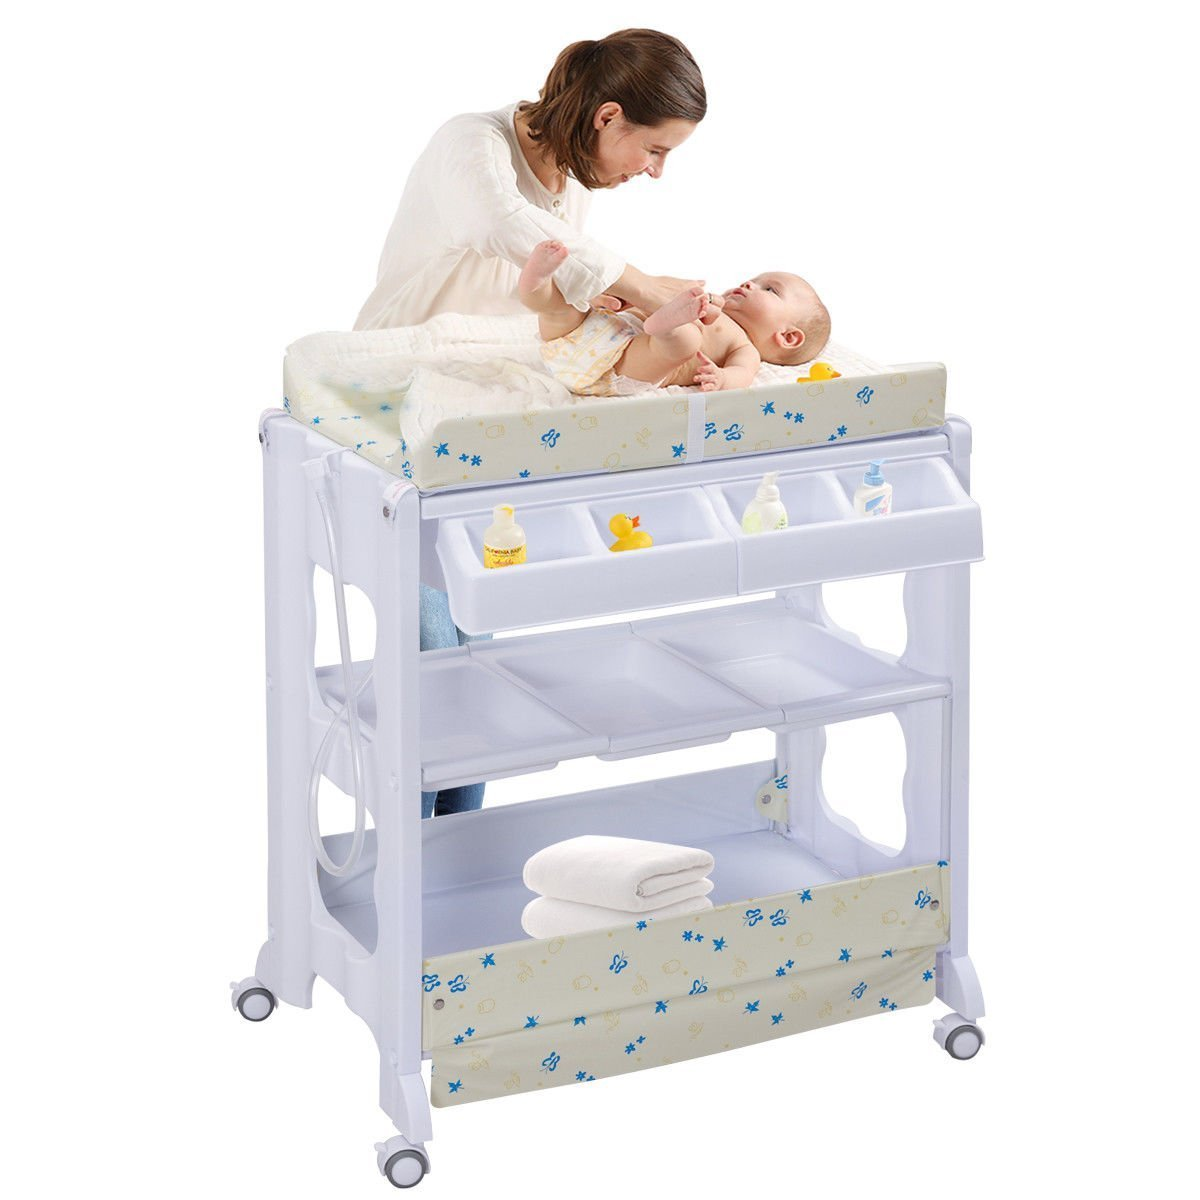 Costzon Baby Bath and Changing Table, Diaper Organizer for Infant with Tube & Cushion (Beige) by Costzon (Image #4)